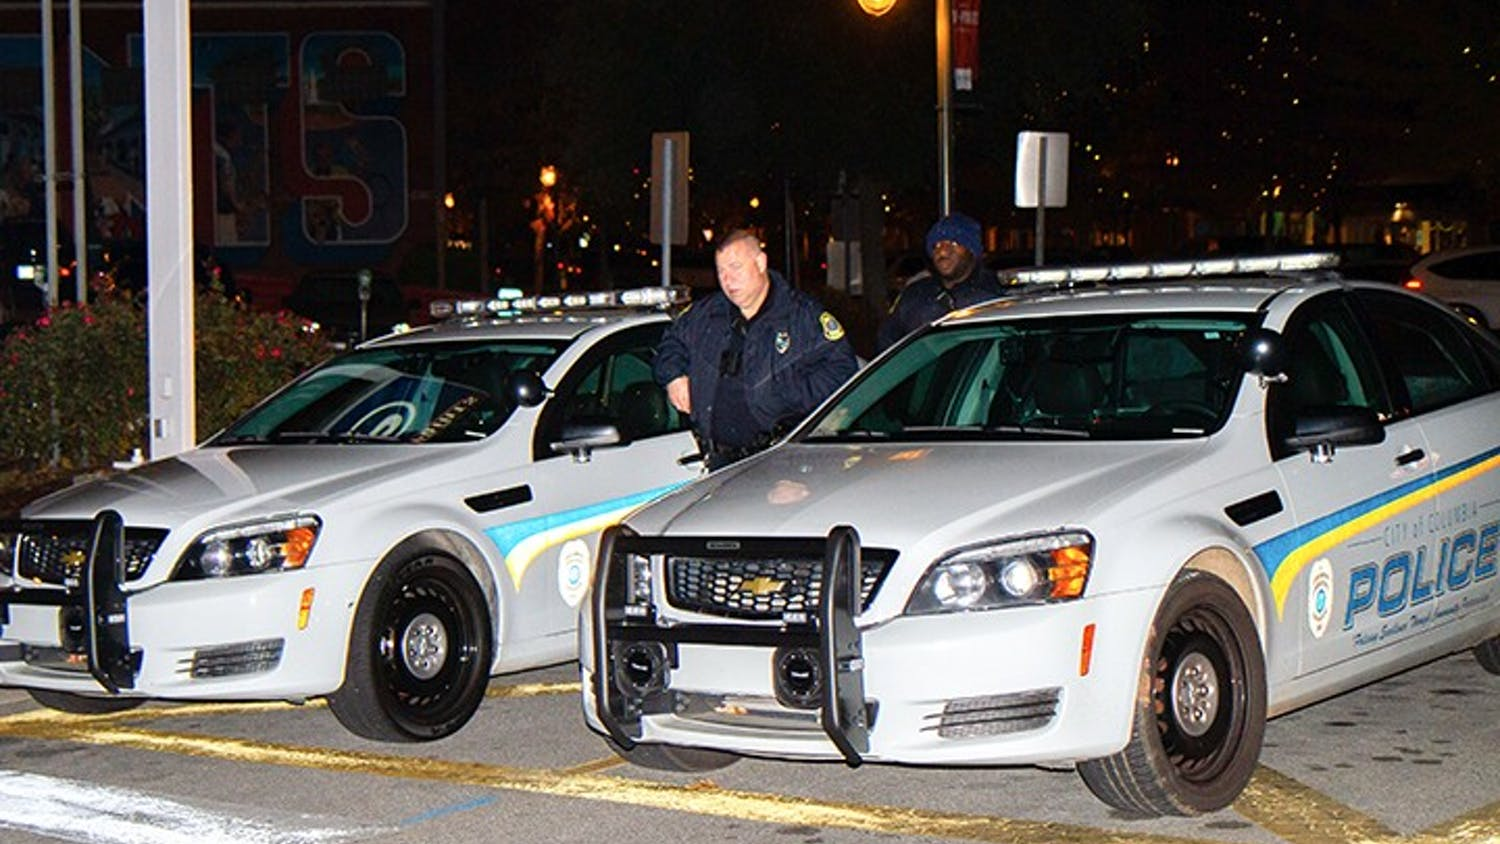 Columbia Police Department officers monitor the streets at night.